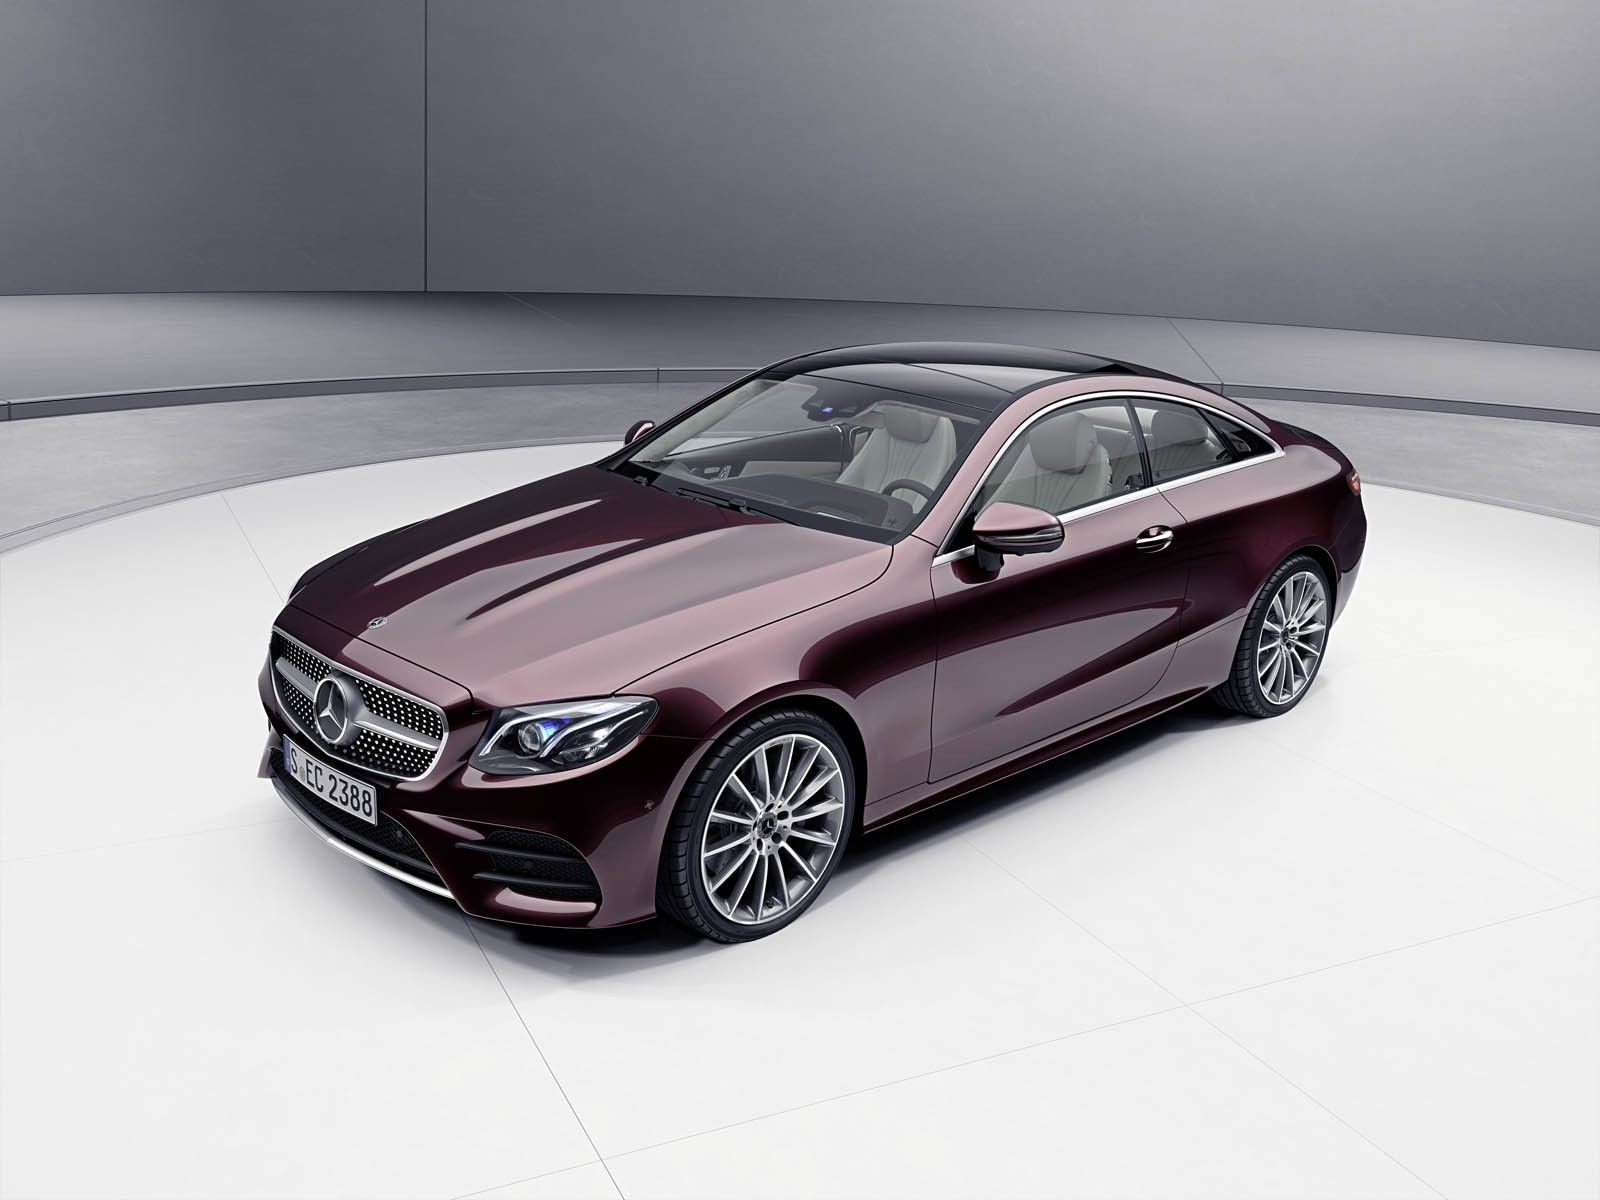 mercedes clase e 2018 automotive n 2 cars mercedes benz benz rh pinterest com